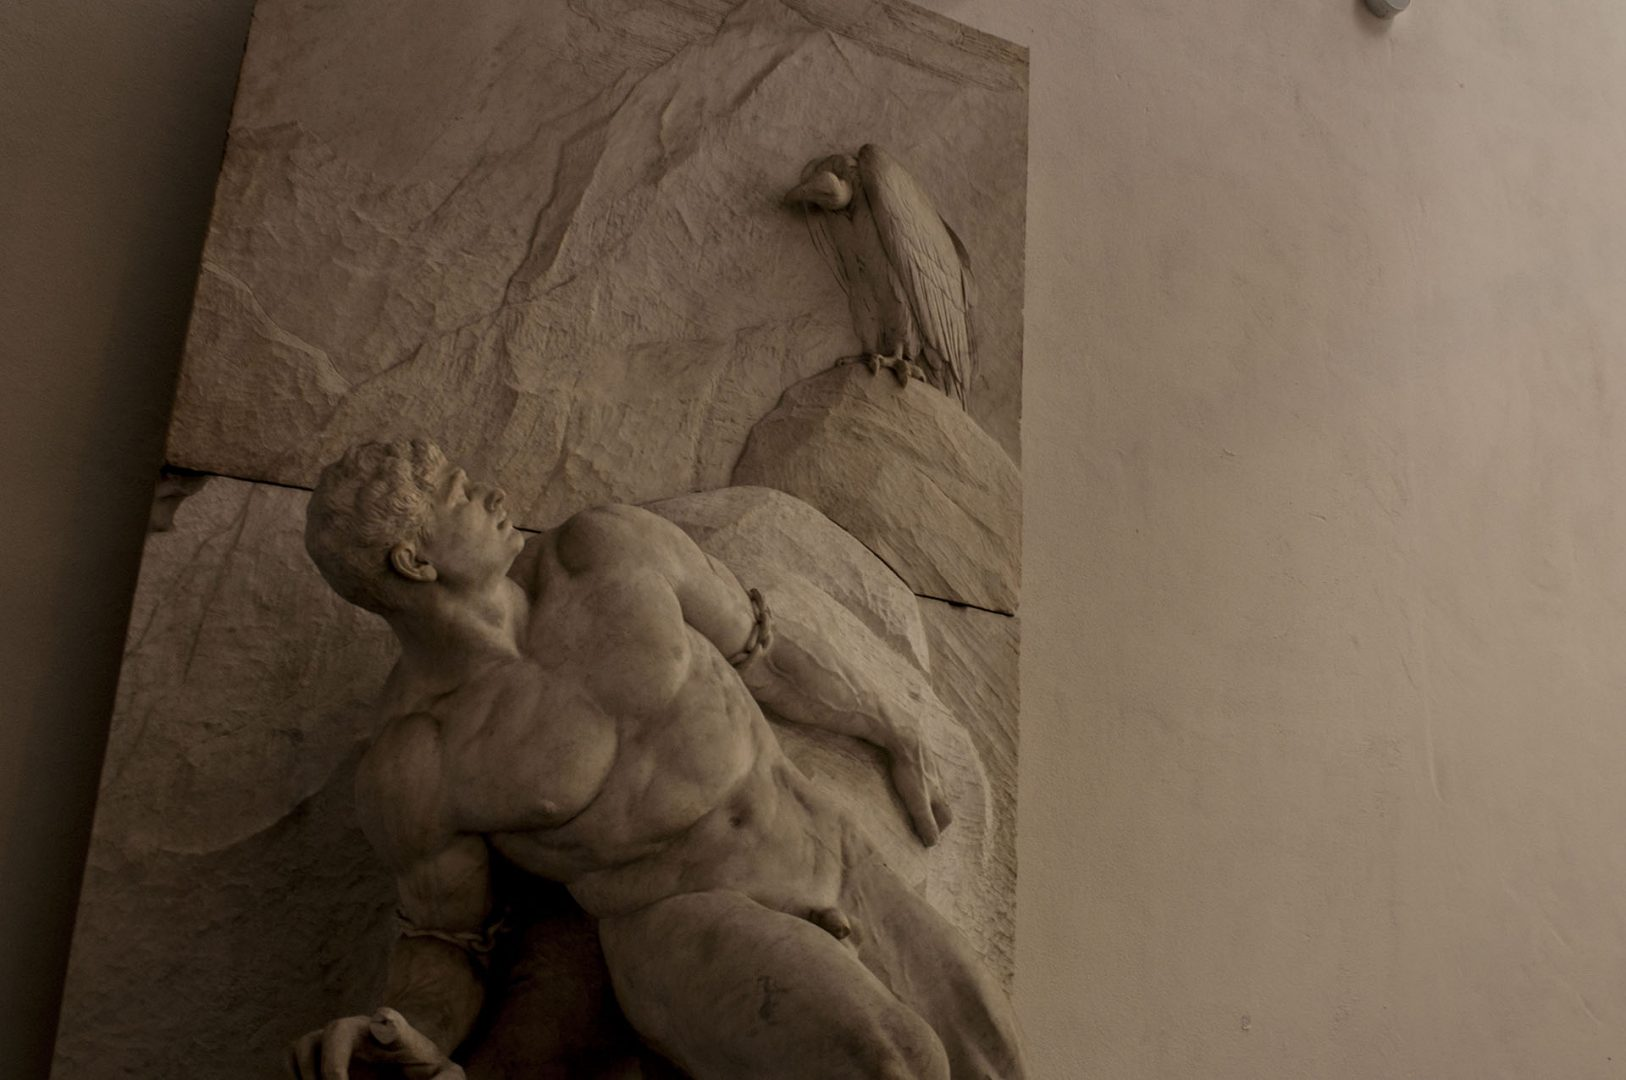 Prometheus in Berlin's Academy of Arts